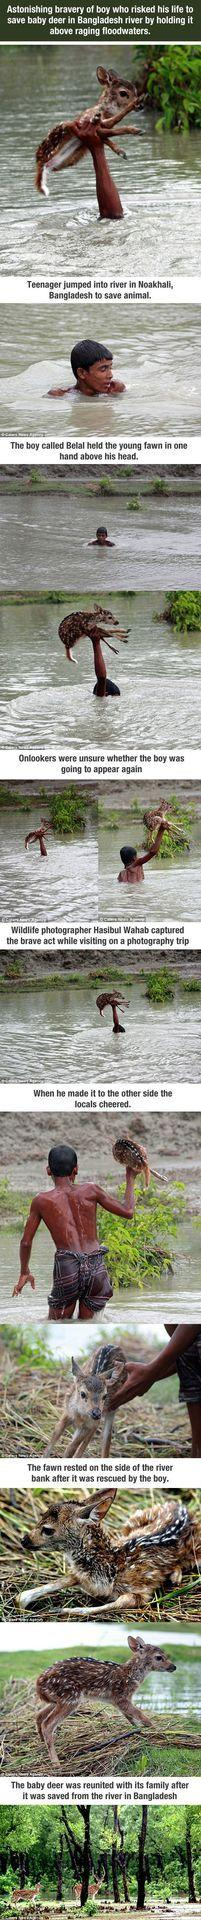 This boy risked his own life to save a baby deer: Restore Your Faith In Humanity, Baby Deer, Faith Restored In Humanity, Hero, Faith In Humanity Restored, Animal Stories, Amazing People, Boy, Human Kindness